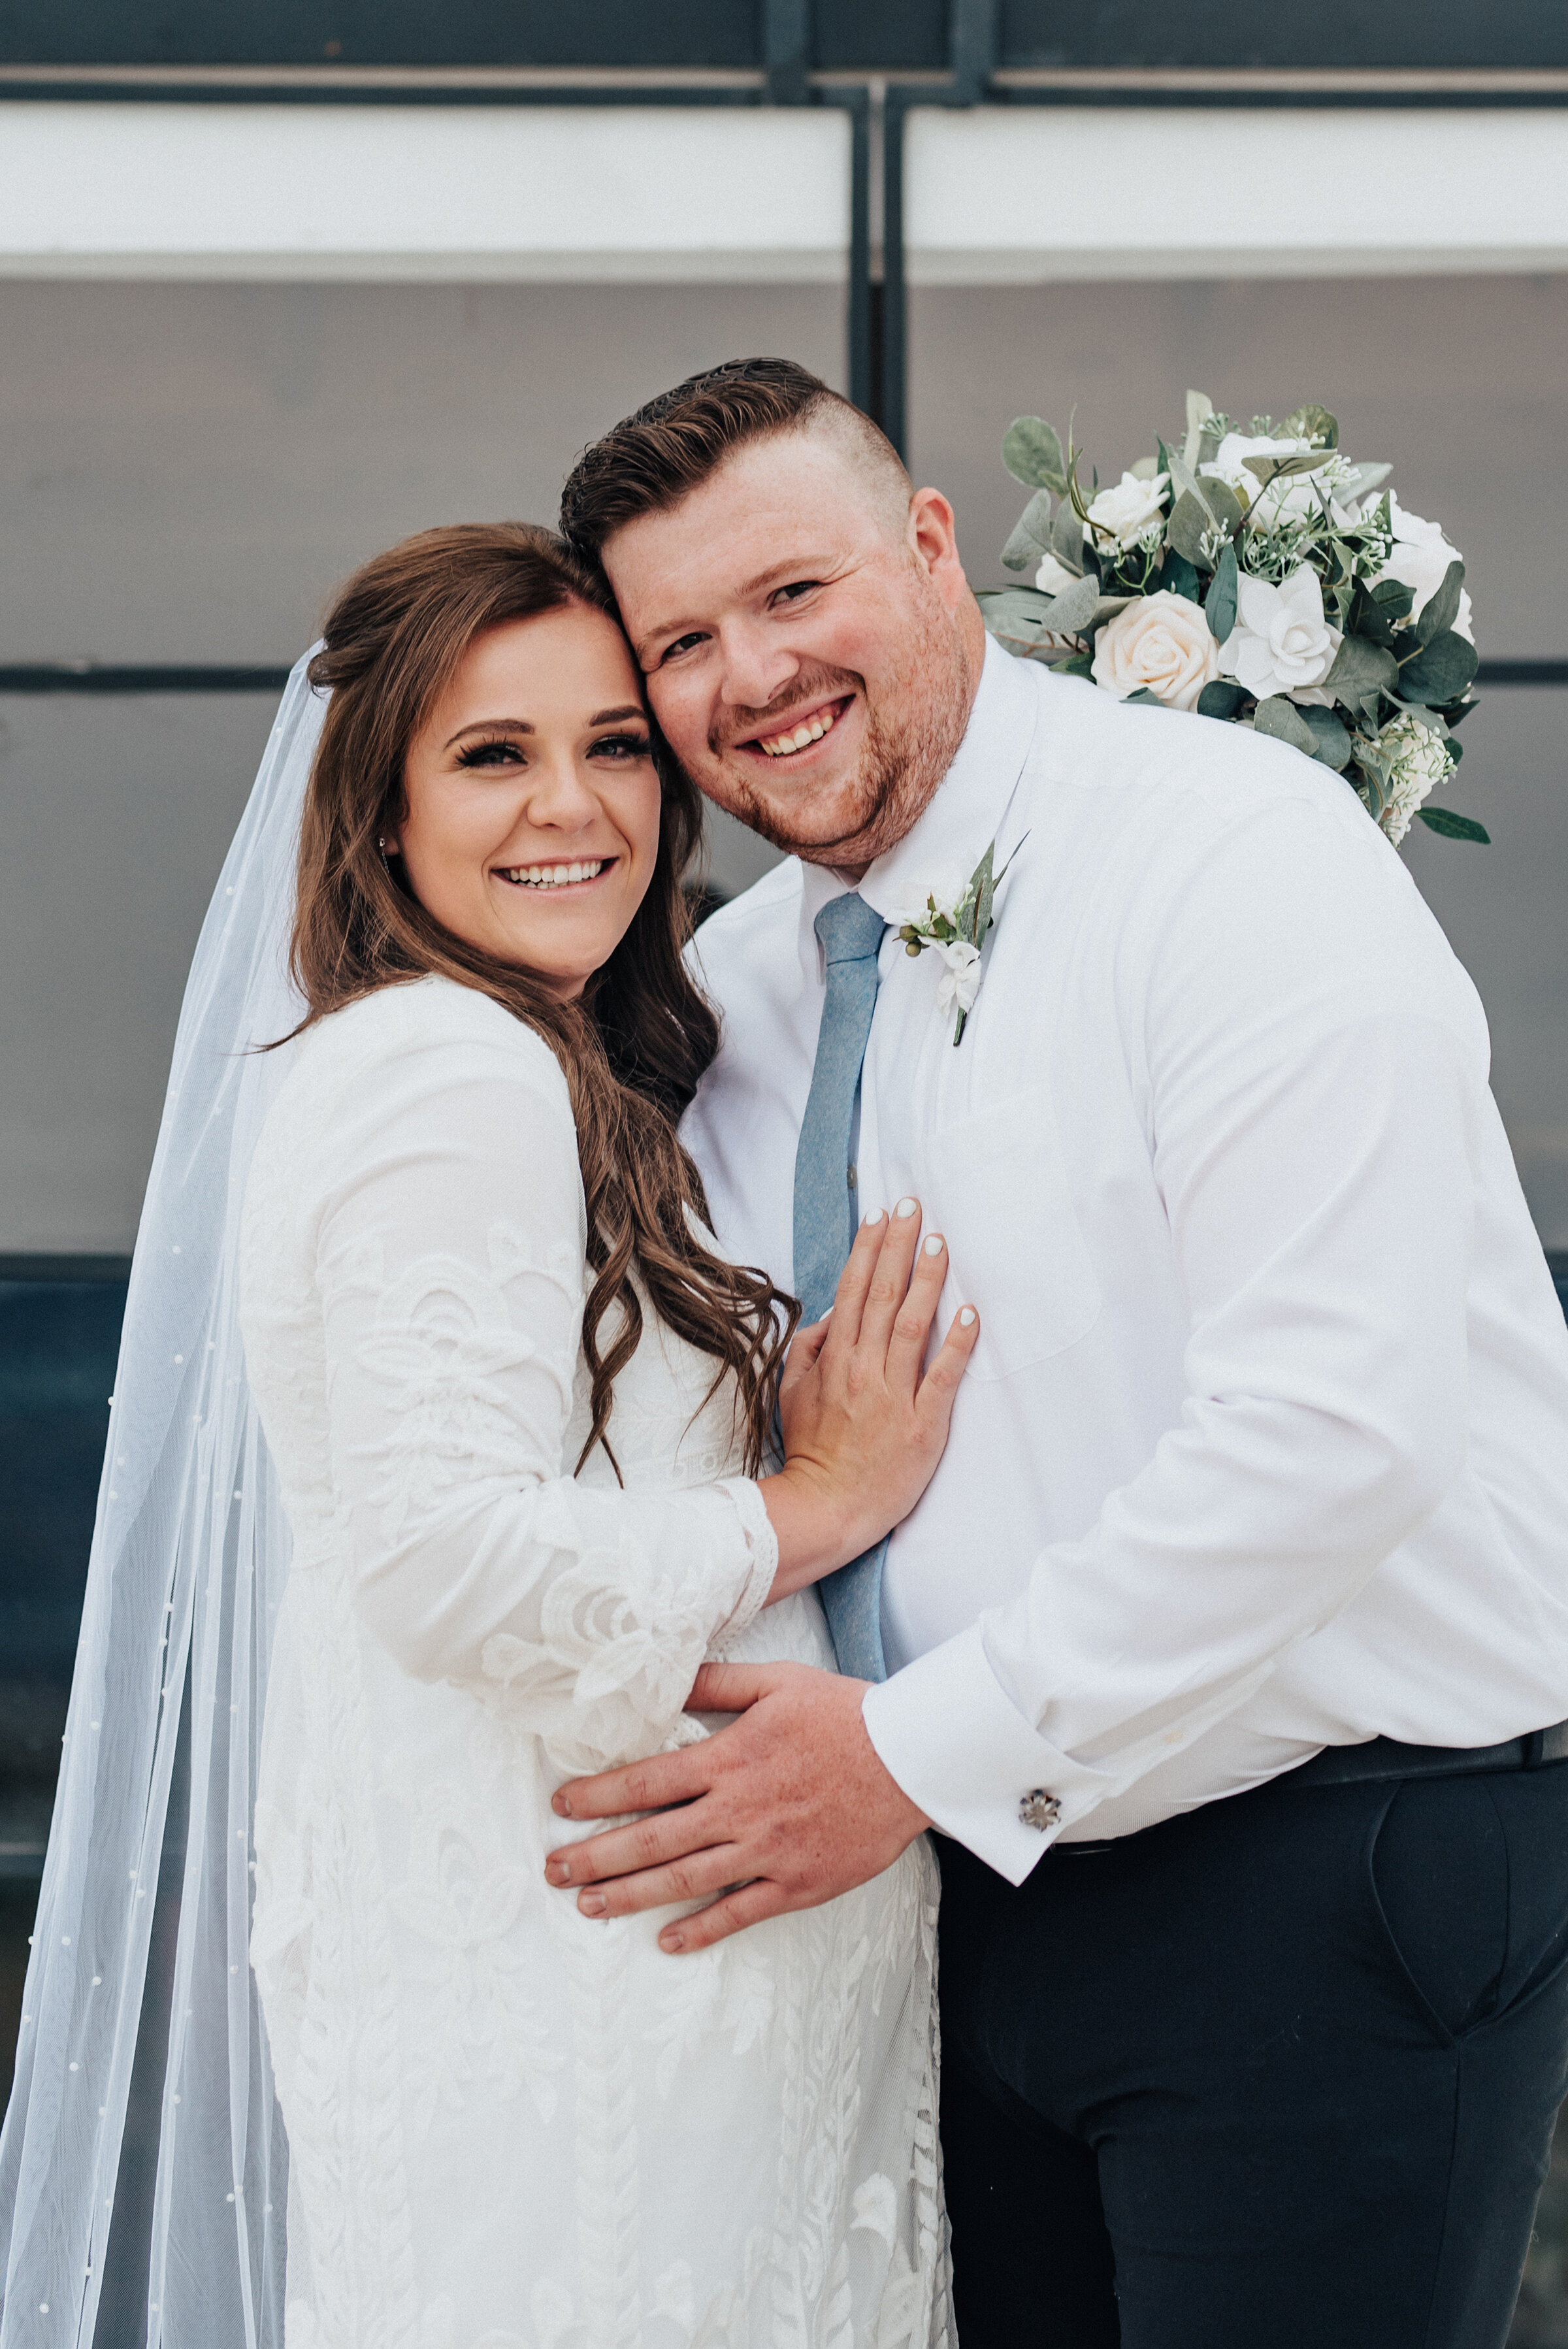 Blushing bride and groom after their intimate wedding ceremony in Ephraim, Utah. photoshoot in Ephraim Utah photography wedding outdoor location western inspired rustic Airbnb photo aesthetic #ephraimutah #utahphotography #weddingdayphotography #gettingmarried #rusticwedding #utahwedding #westernstyle #weddingphotoshoot